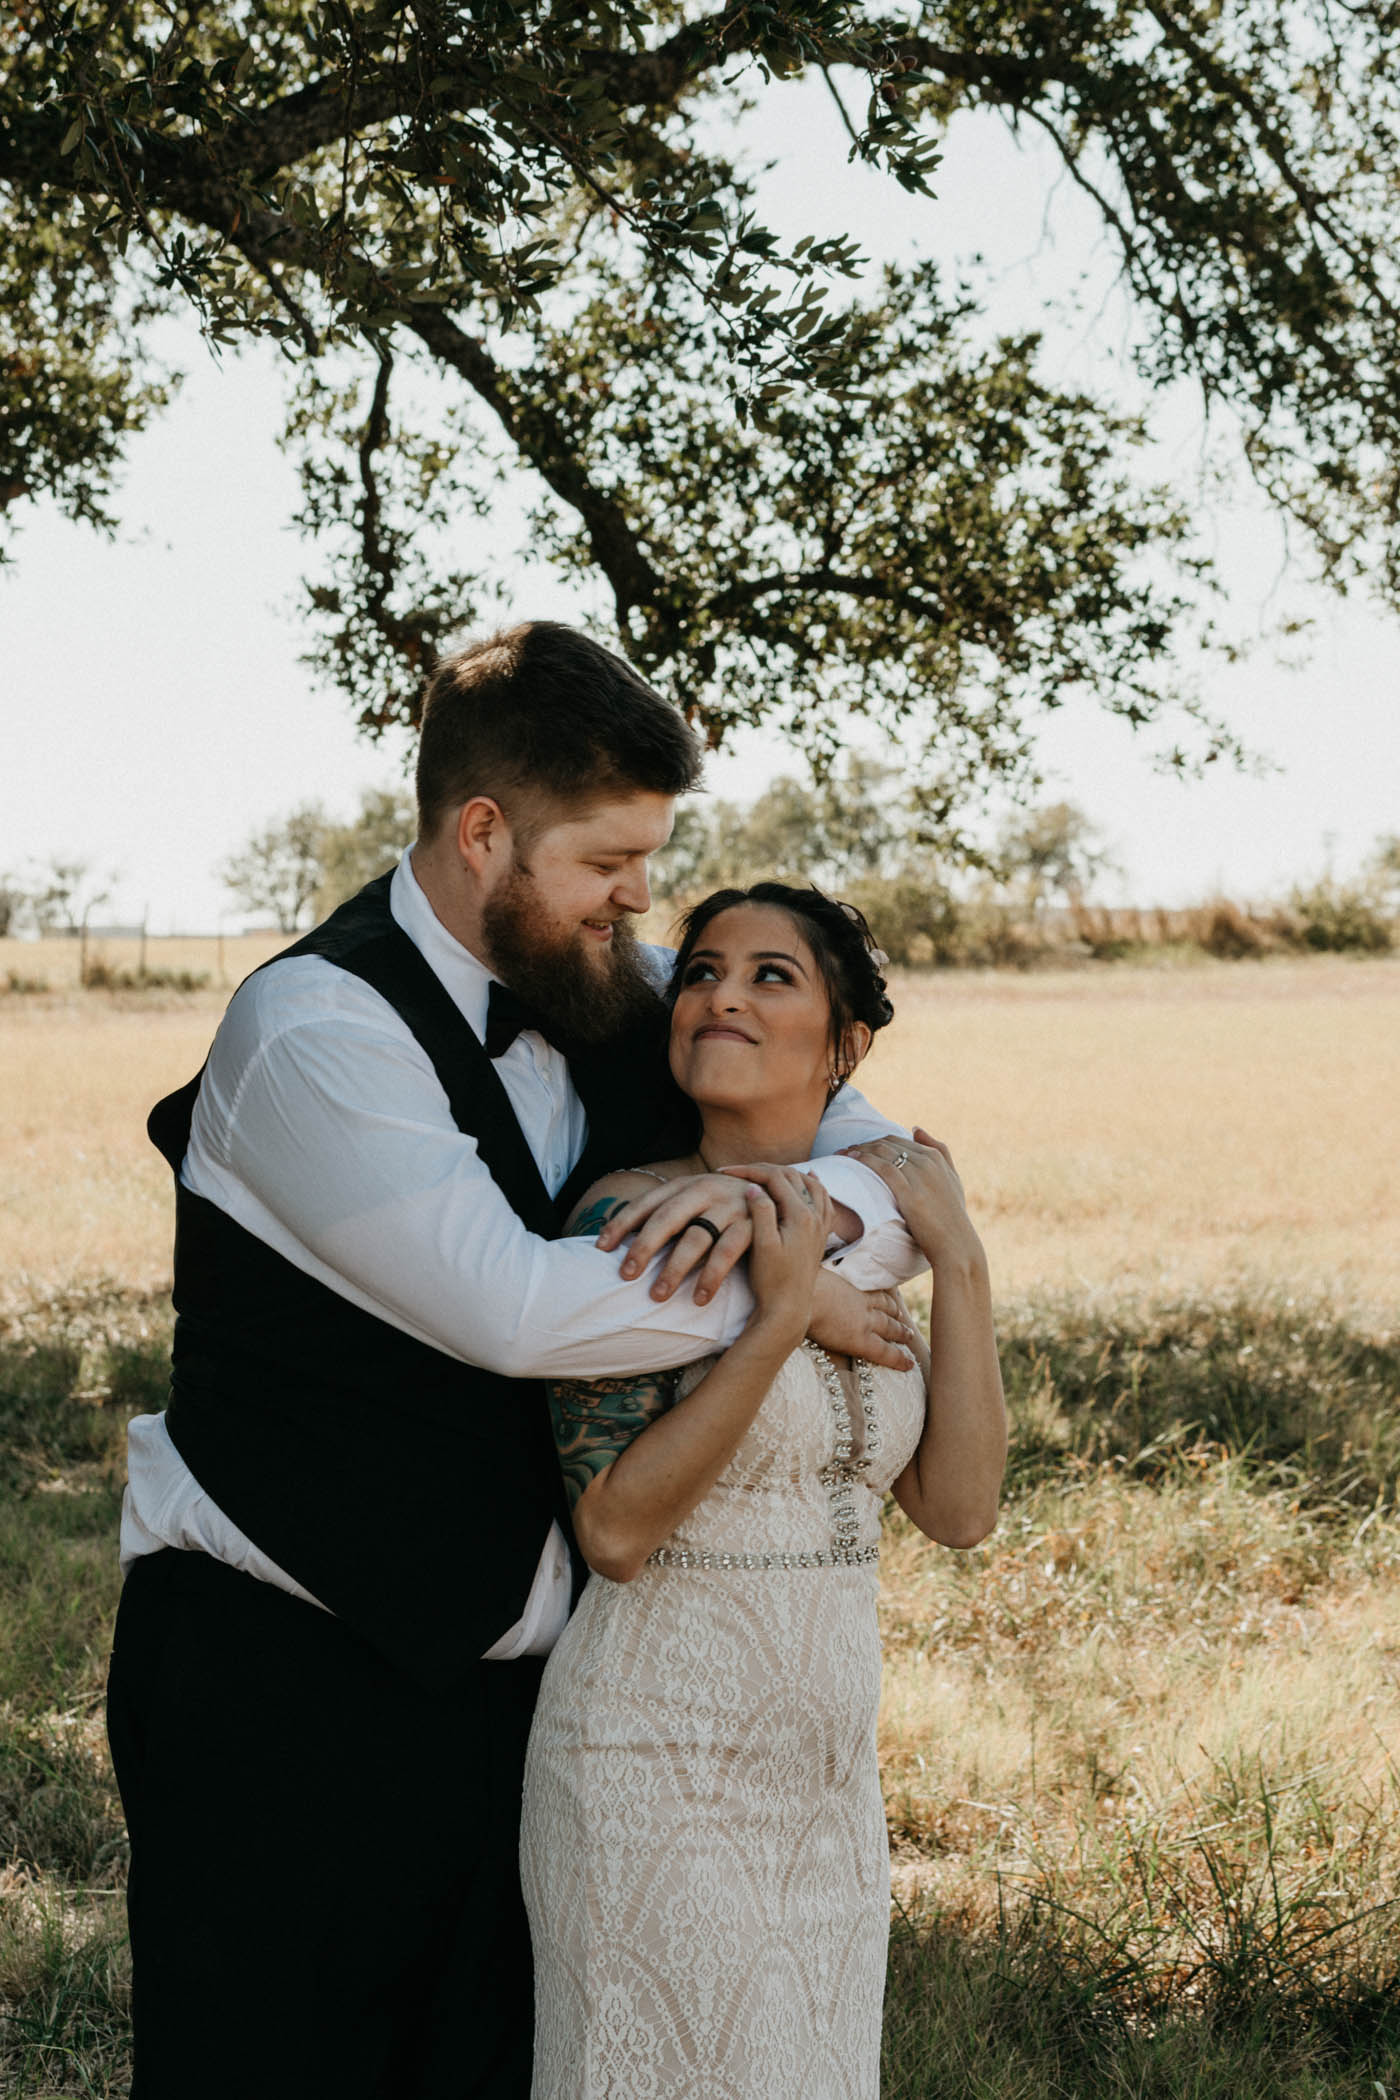 groom hugging bride from behind in a field in north texas after their traditional wedding ceremony